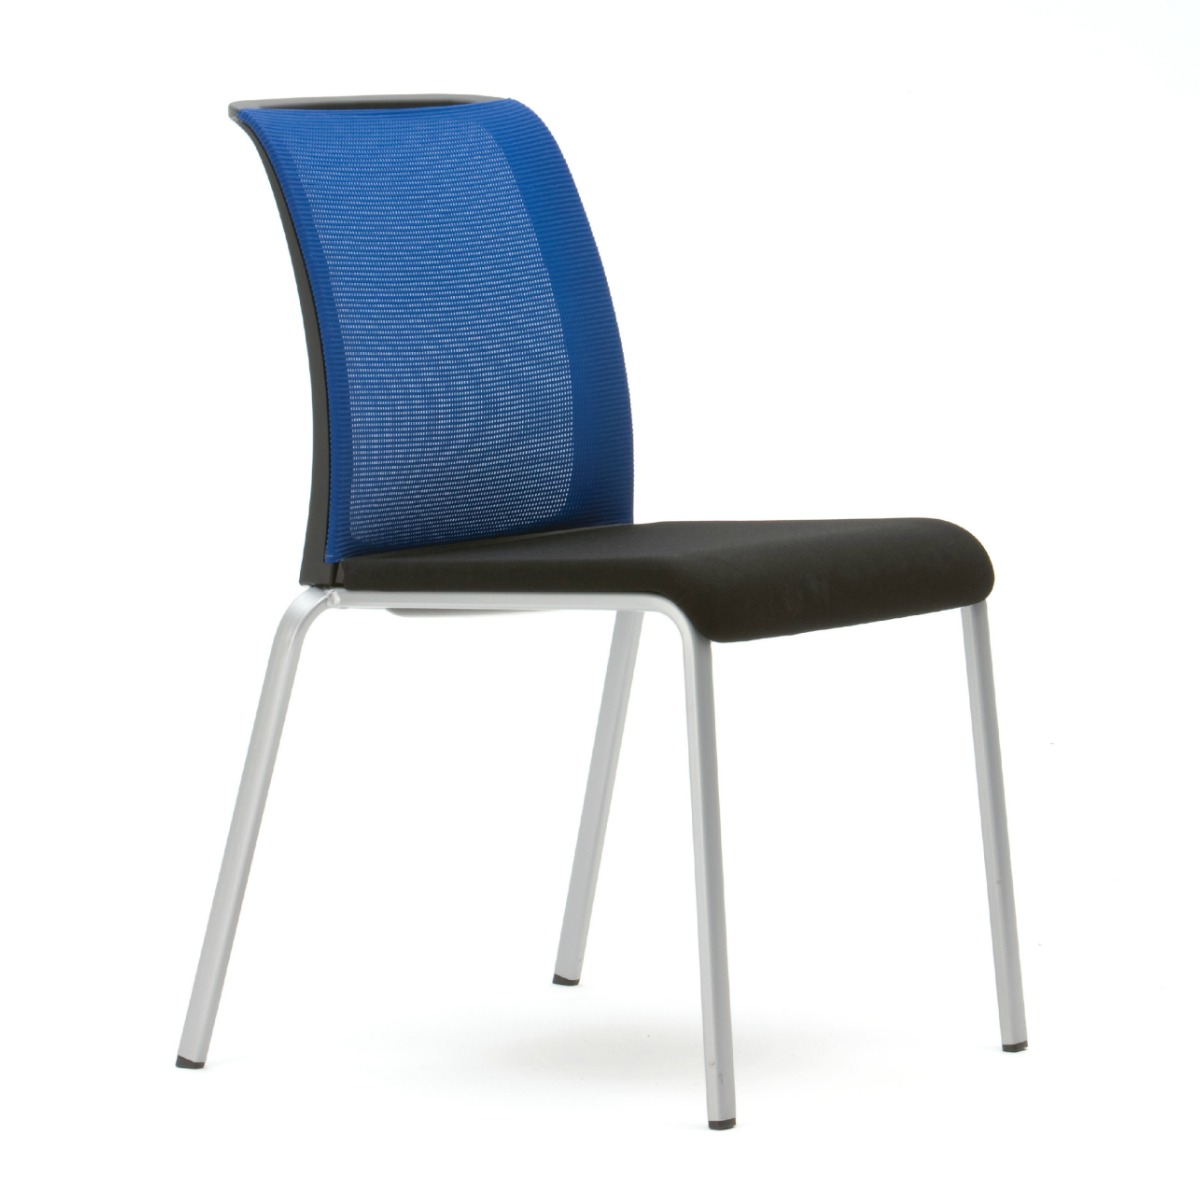 steelcase reply chair review rental chairs for baby shower shop guest mesh at the human solution